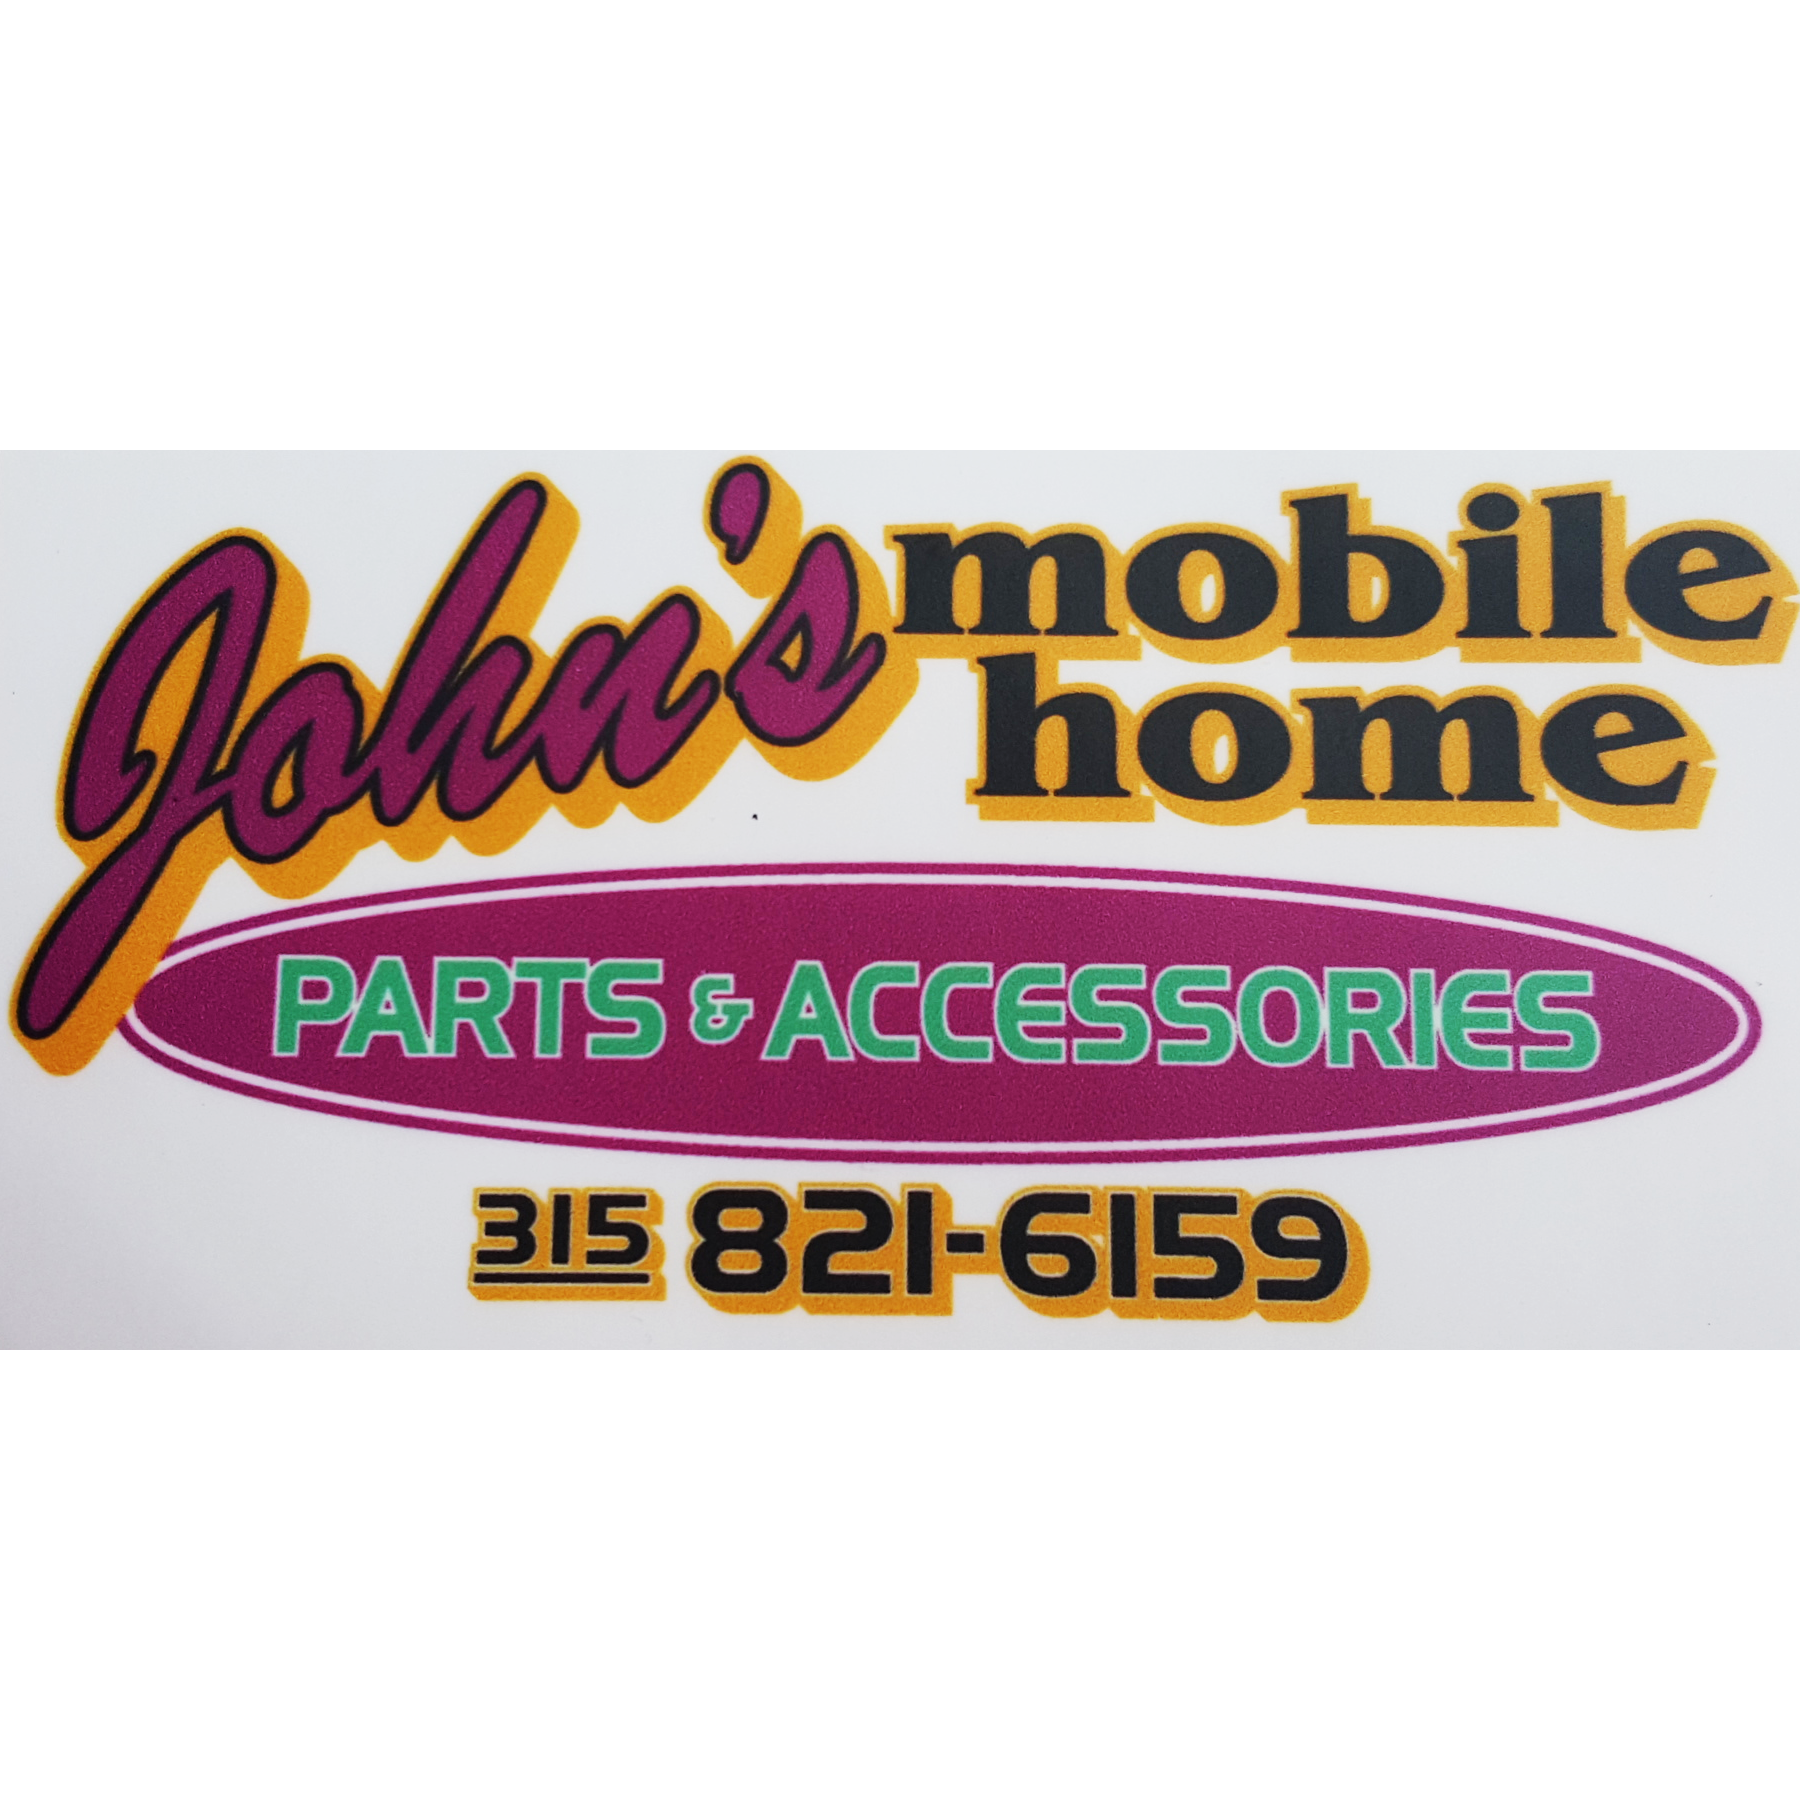 Johns Mobile Home Parts & Accessories